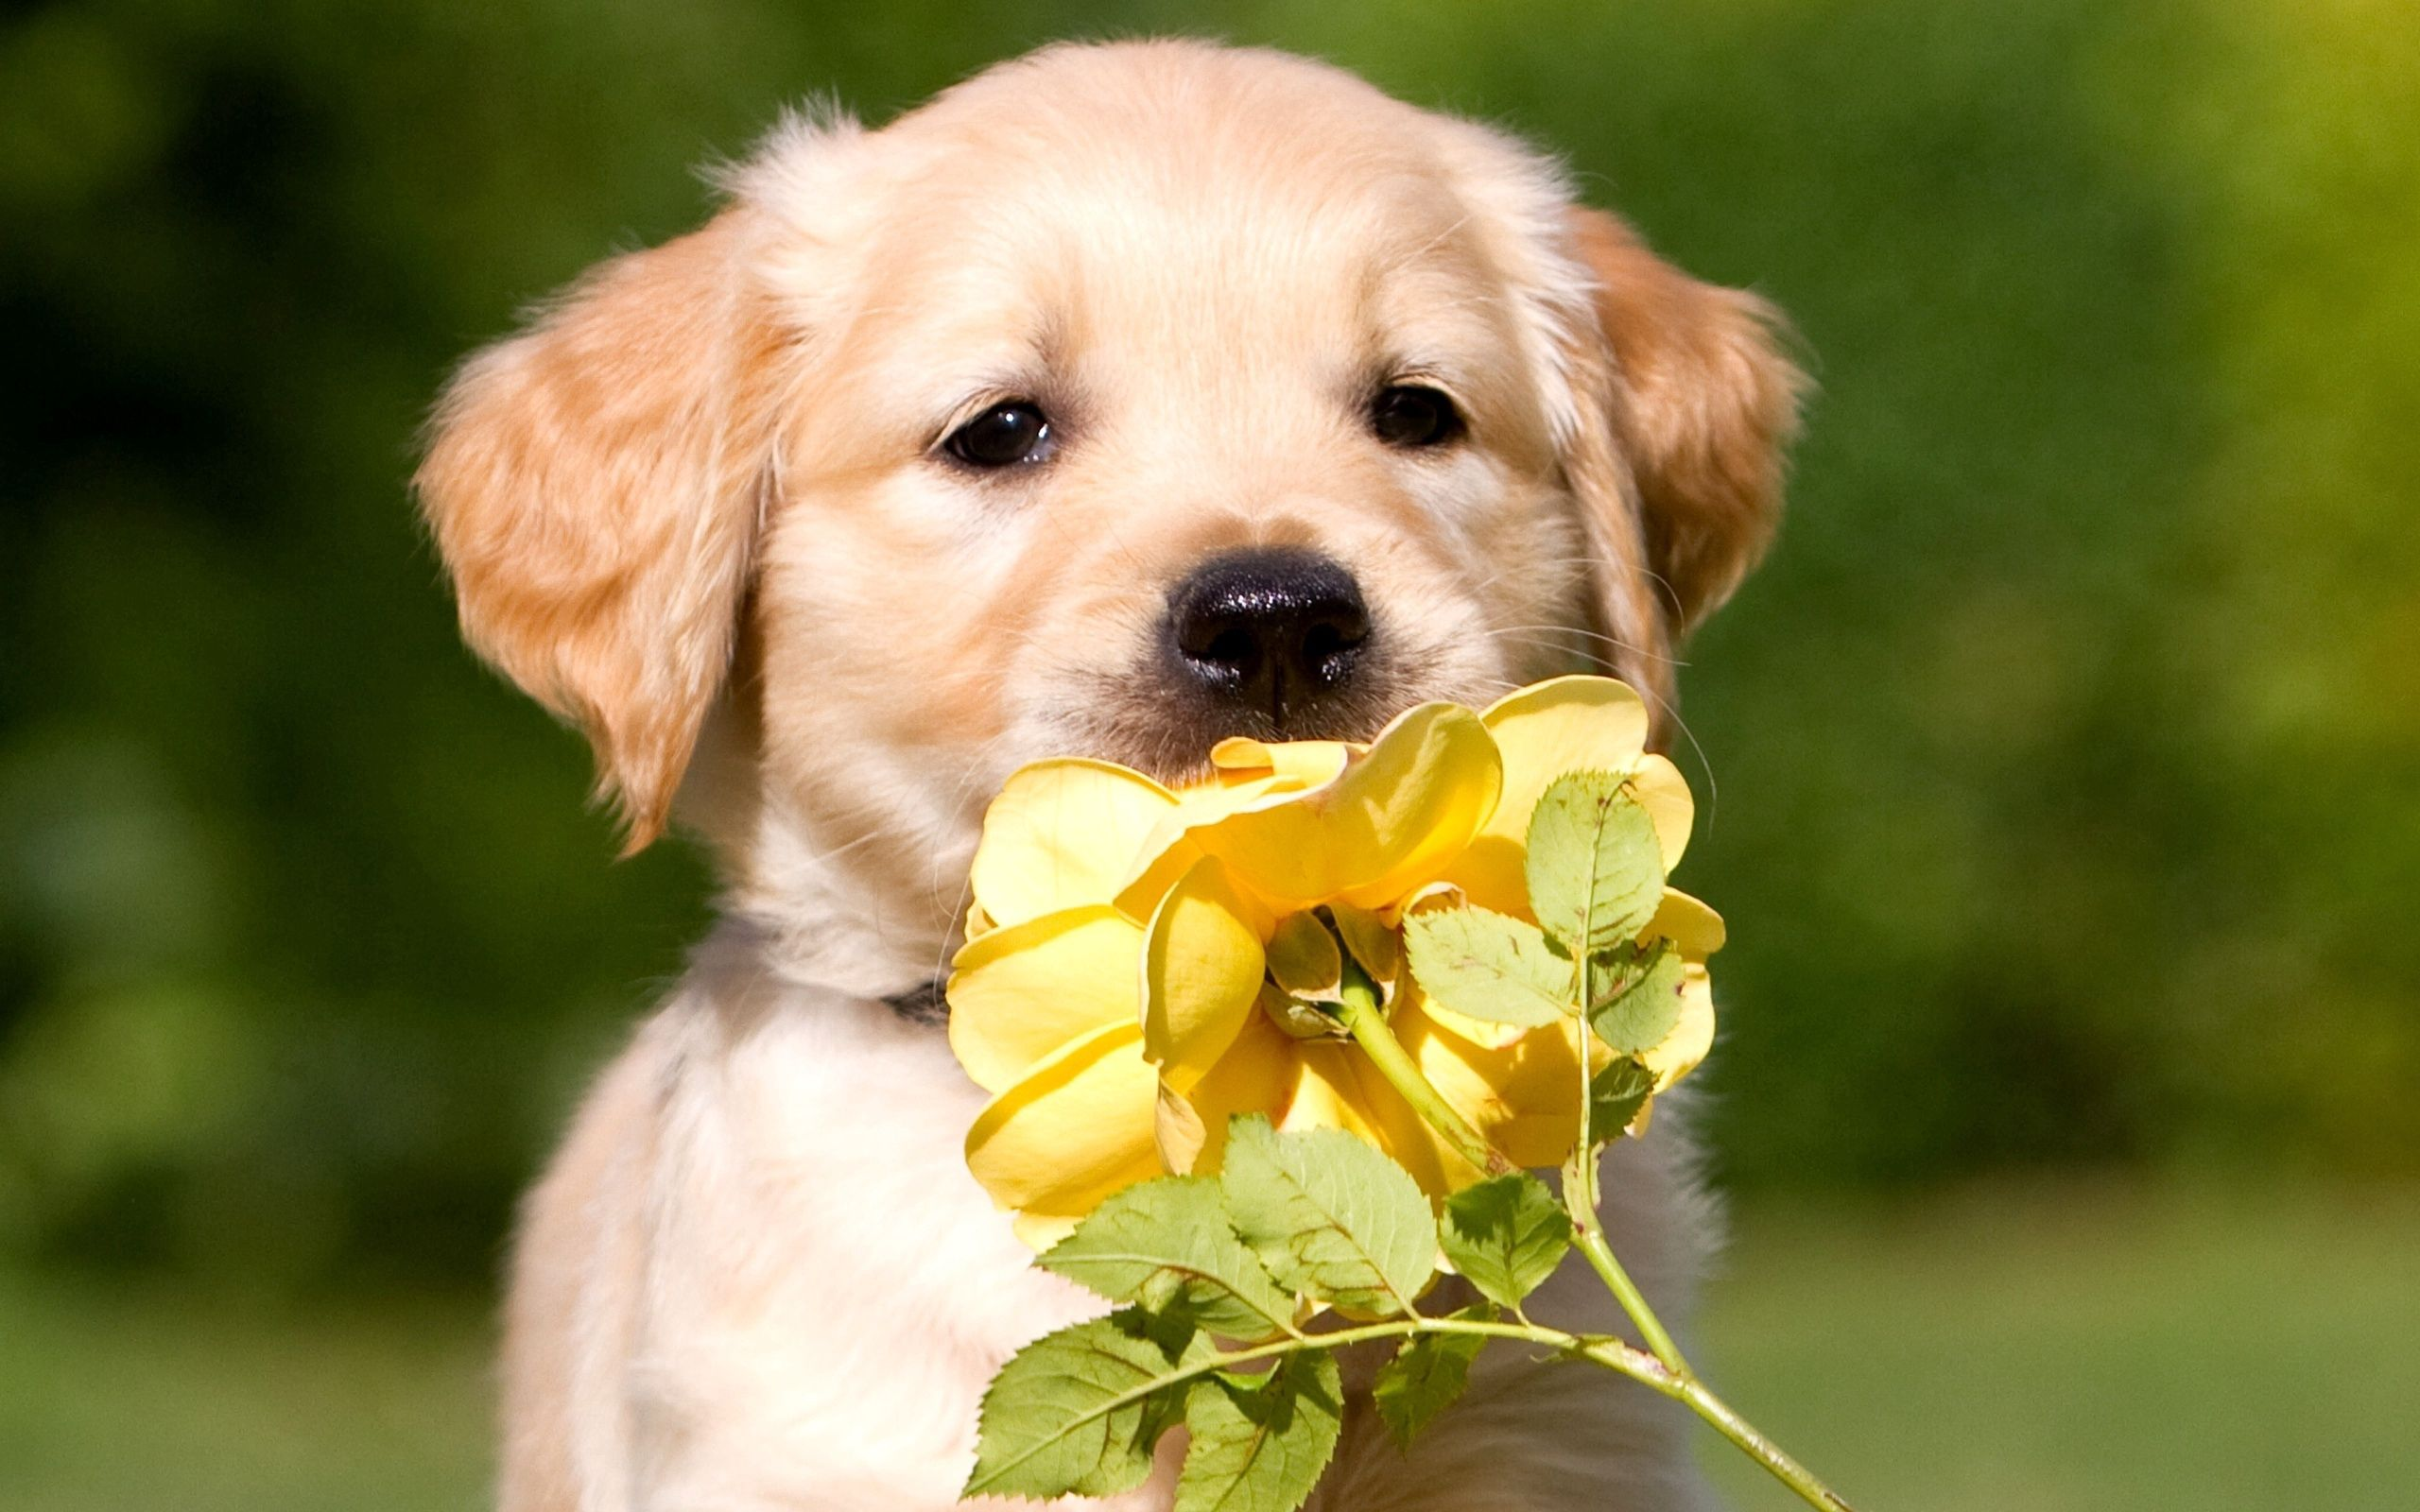 107004 download wallpaper Animals, Puppy, Muzzle, Flower screensavers and pictures for free